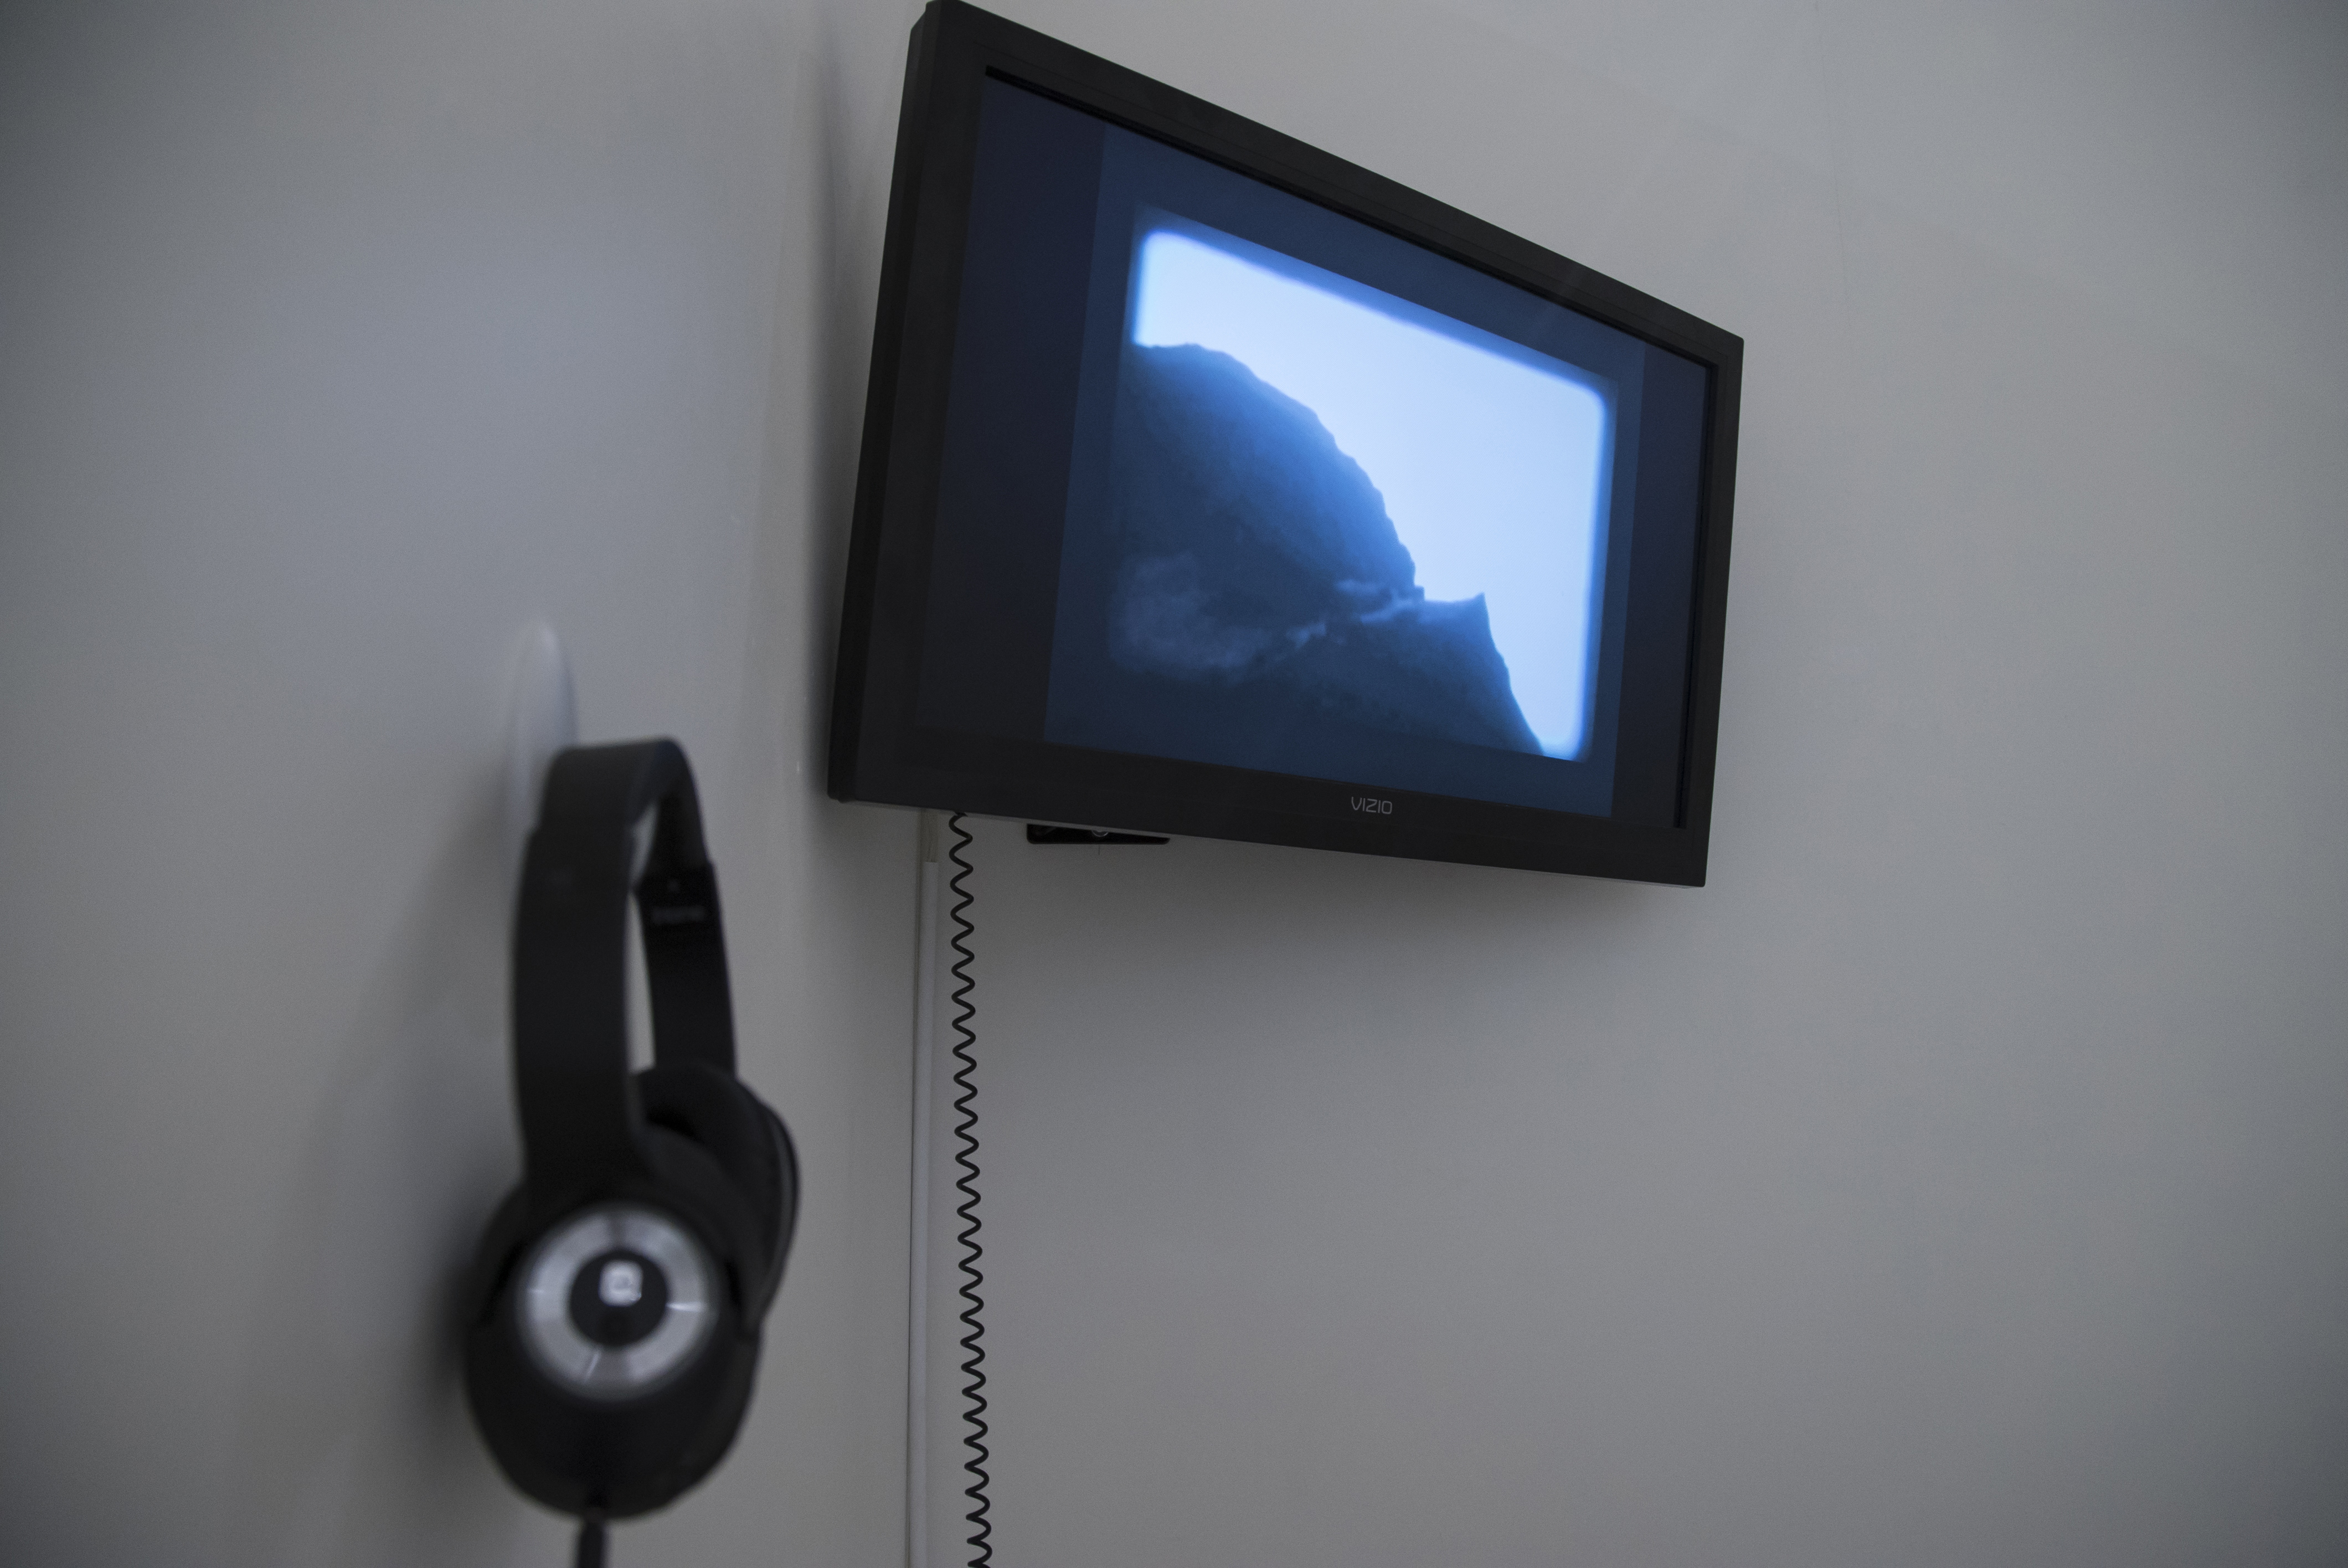 Witness (05:07 minutes), 2010-2011